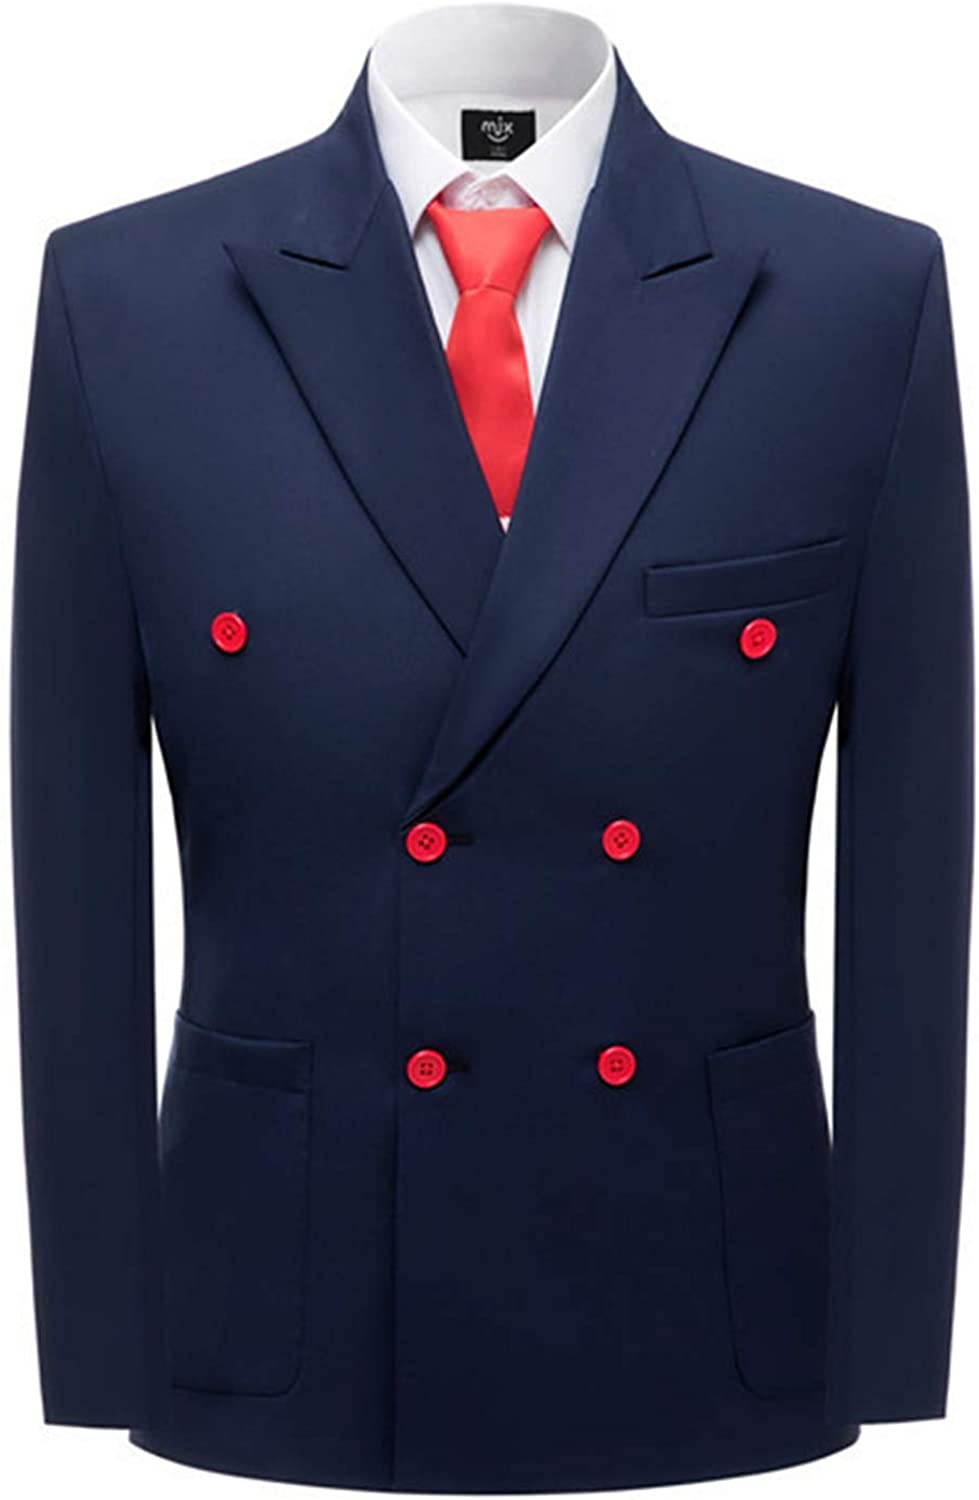 LILIS Men's Navy Blue OFFicial shop Double Breasted Pieces Popular product 2 Blaz Suits Formal